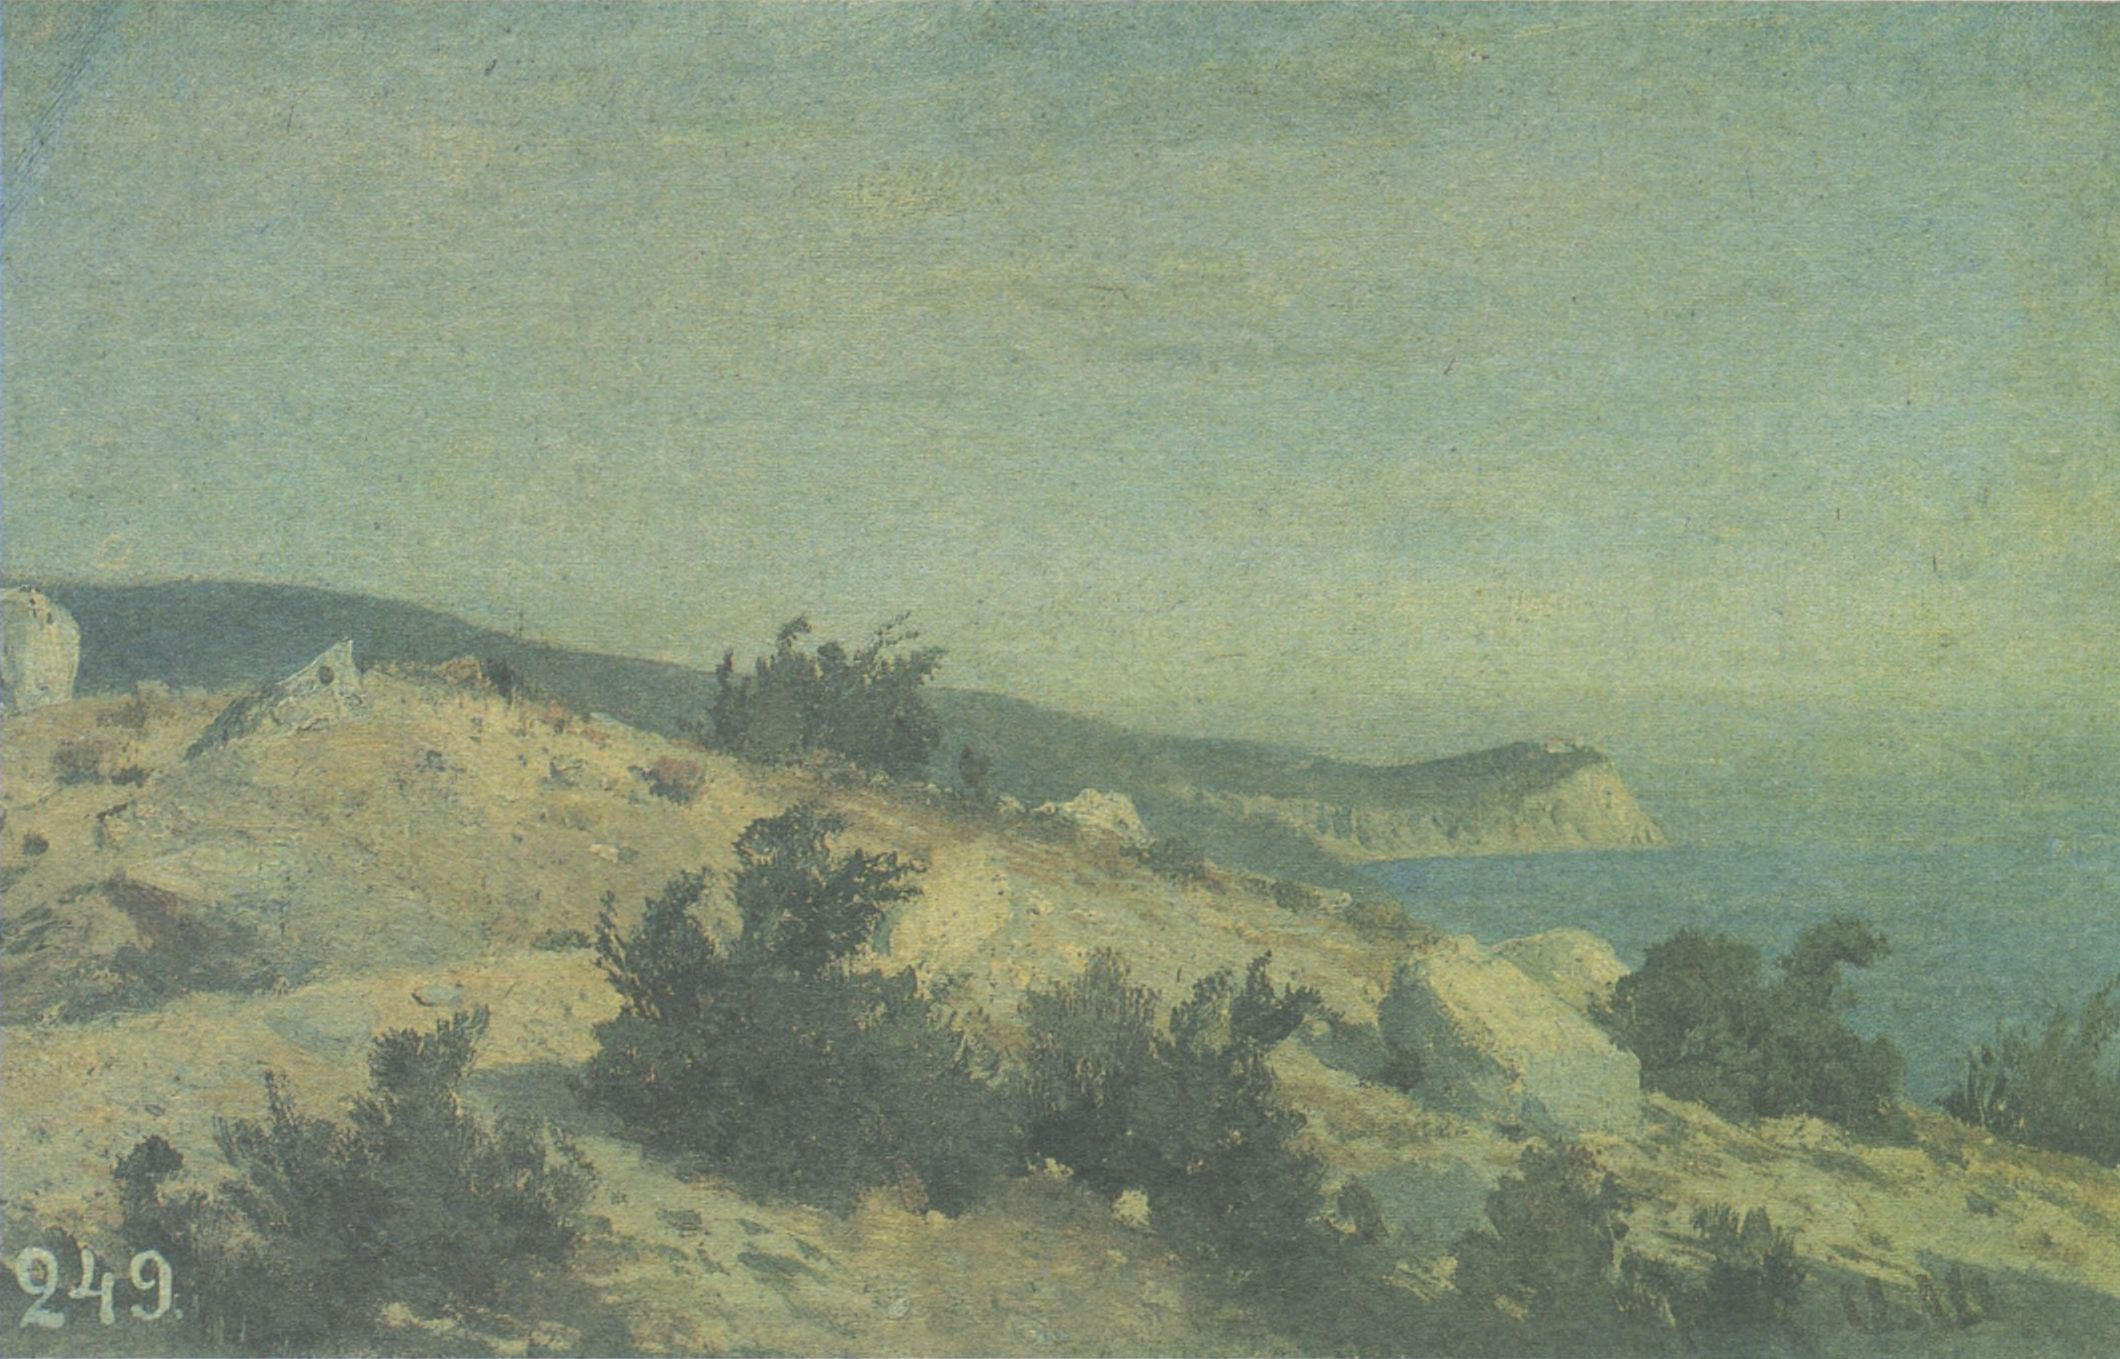 34. Мыс Ай-Тодор. Крым. Этюд. 1879 (Cape Ai-Todor. The Crimea. Study. 1879)